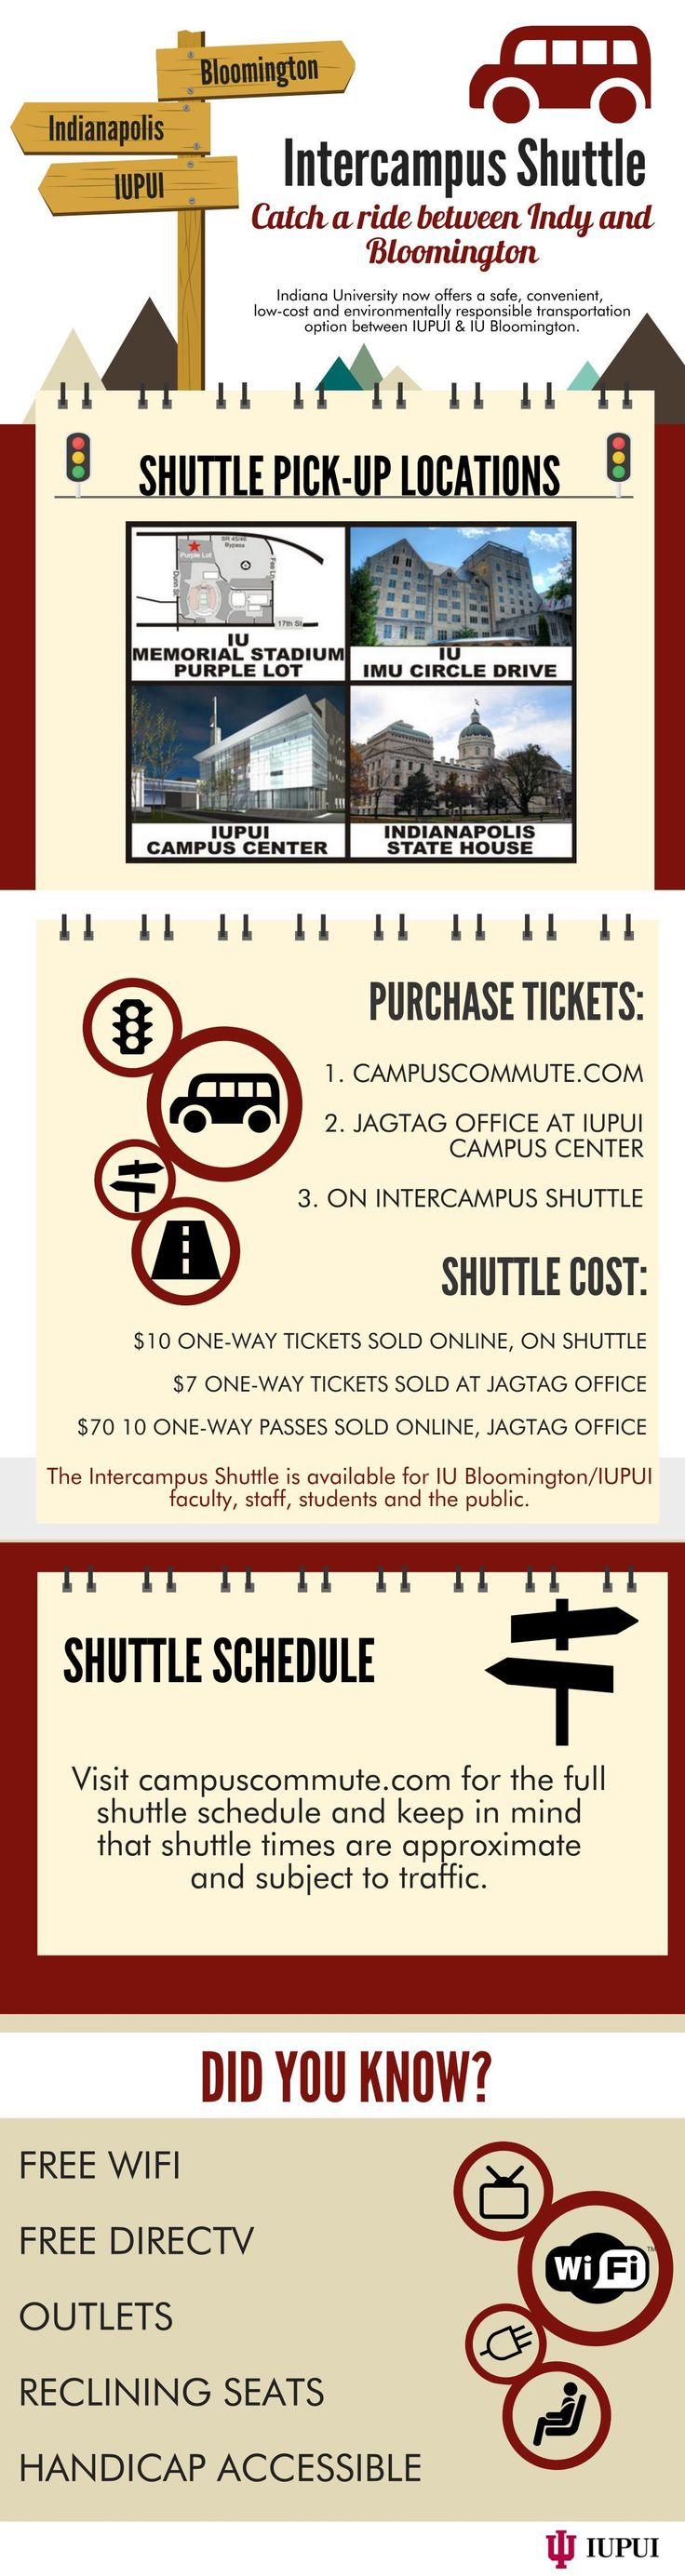 Indiana University has launched Campus Commute, an intercampus shuttle bus service between Bloomington and Indianapolis, making 4 trips each weekday.